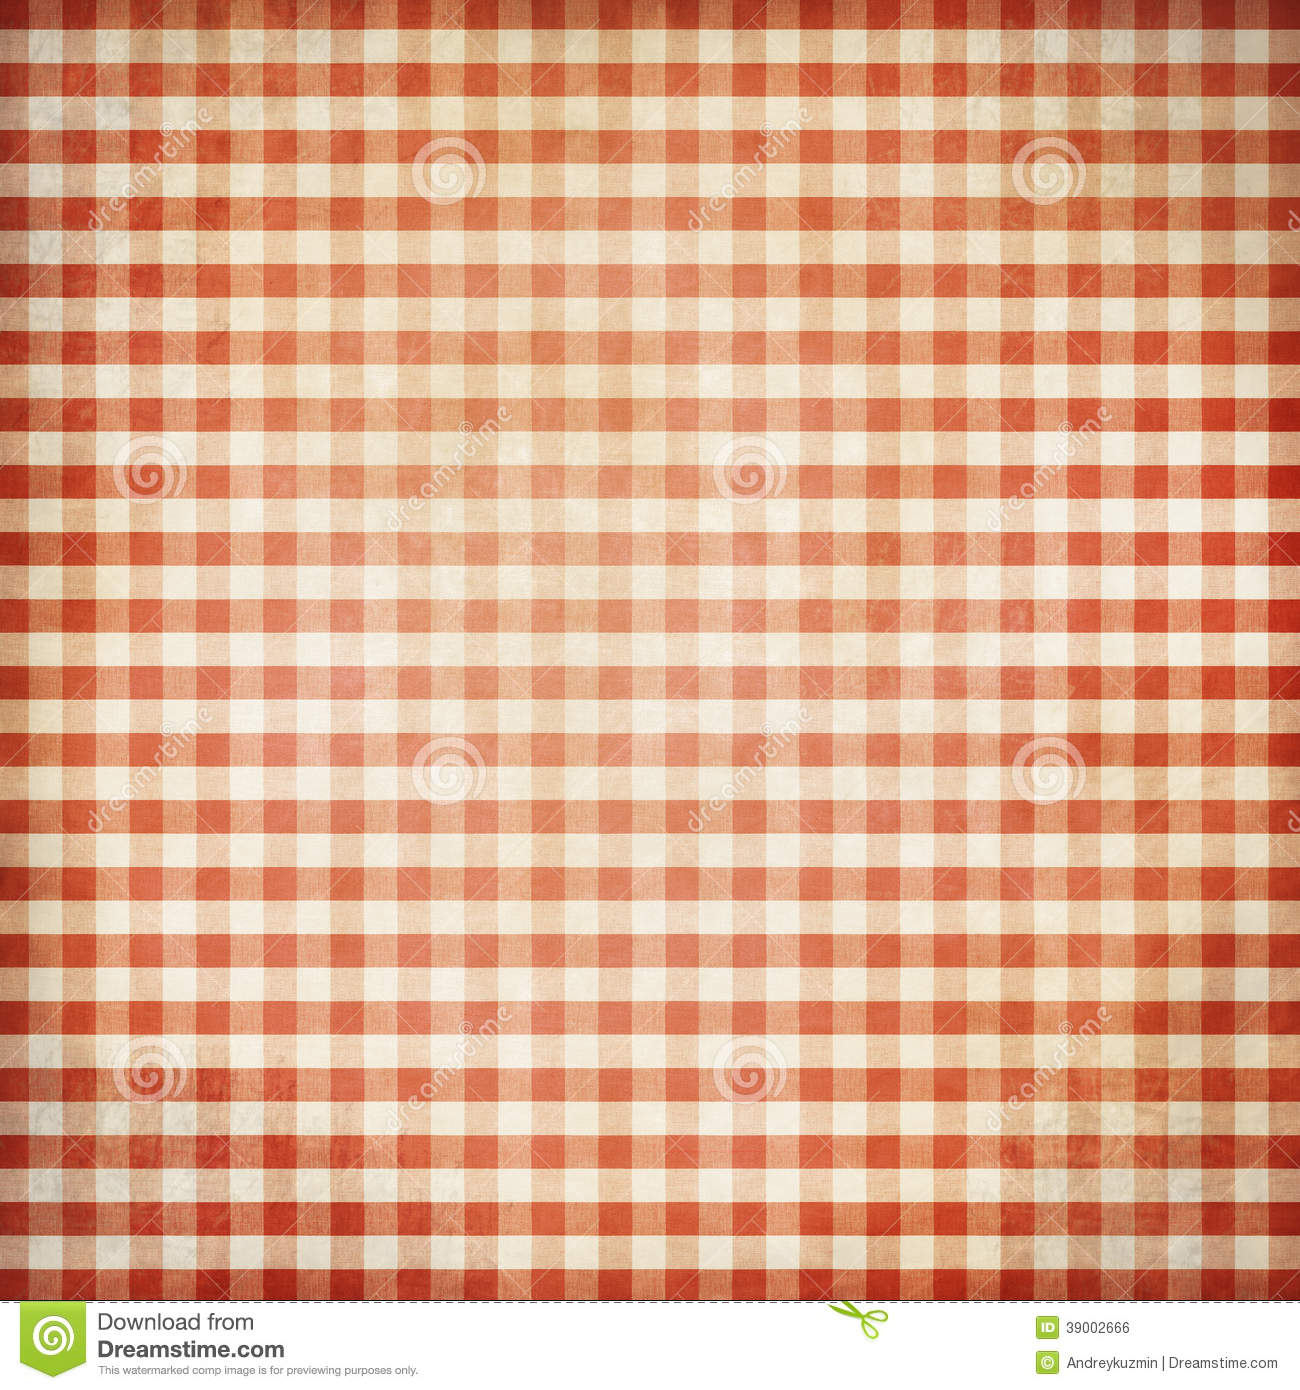 Red Grunge Picnic Tablecloth Background Stock Photo